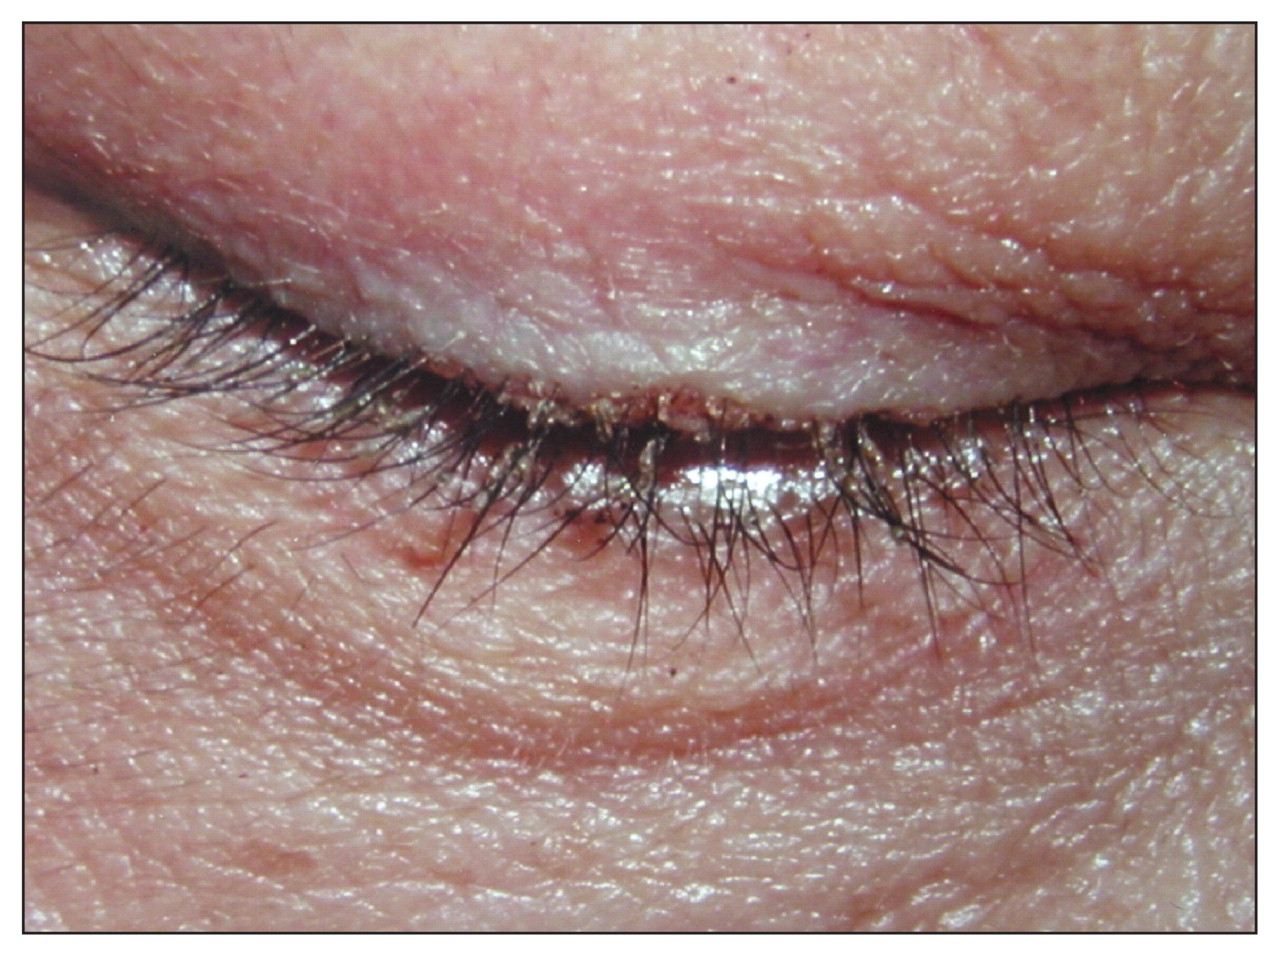 Infestation Of The Eyelashes With Phthirus Pubis Cmaj